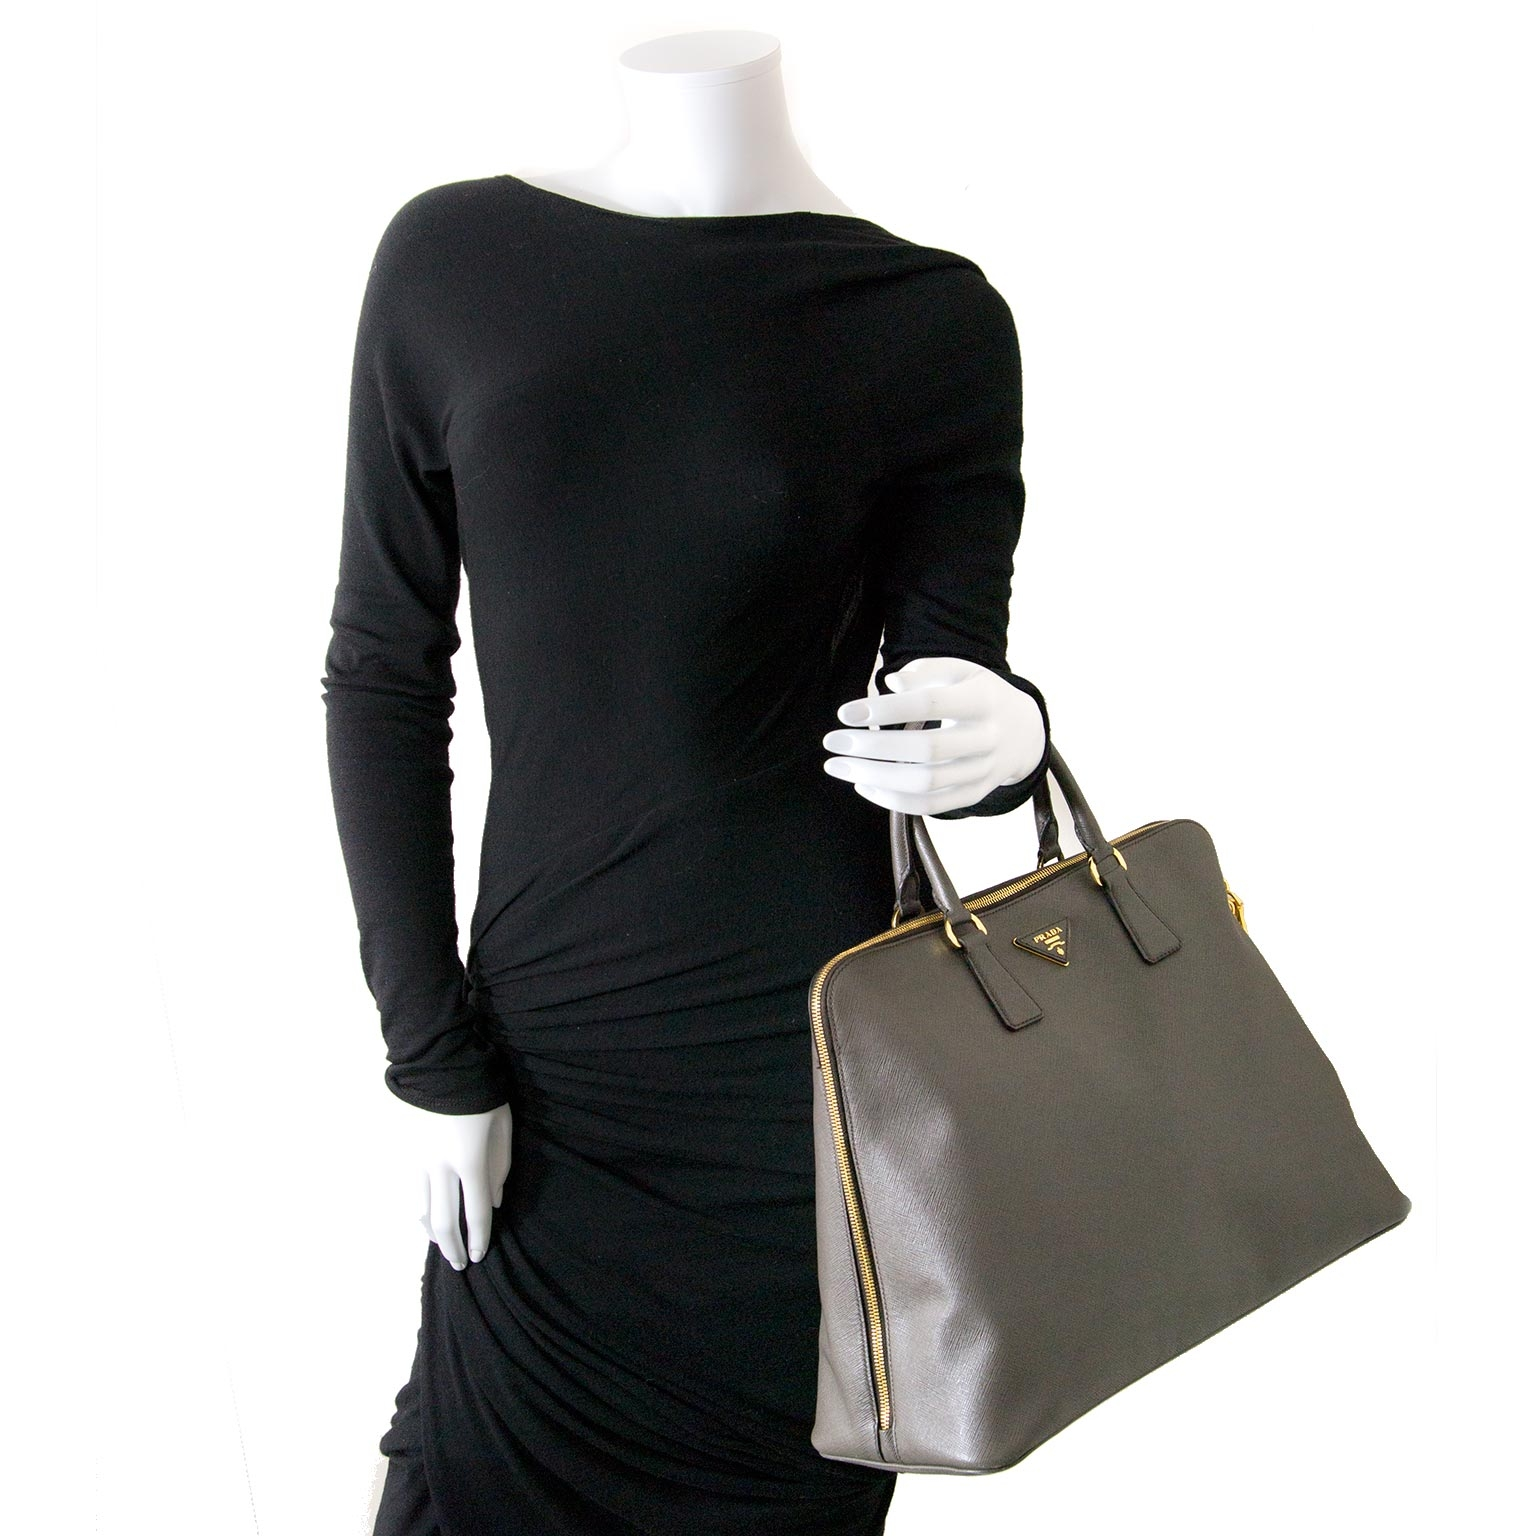 prada grey saffiano lux bauletto bag now for sale at labellov vintage fashion webshop belgium